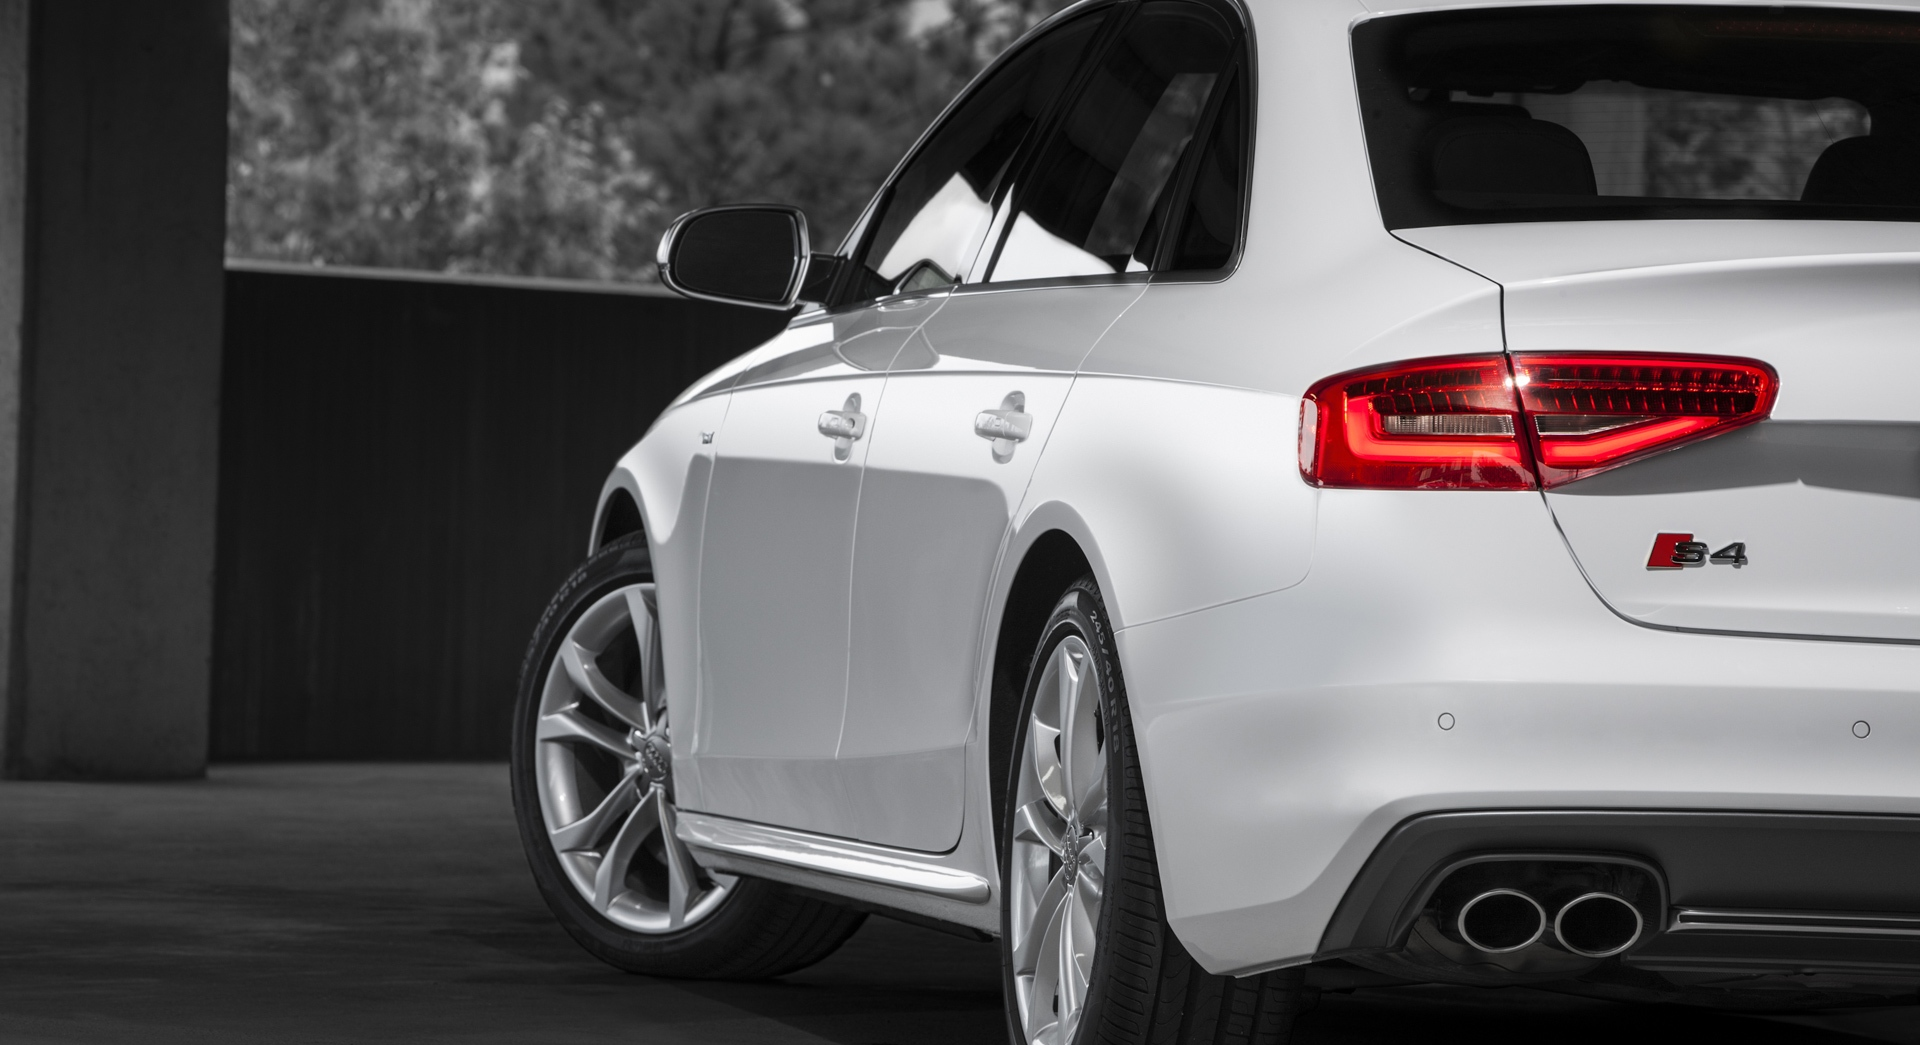 audi s4 white laptop